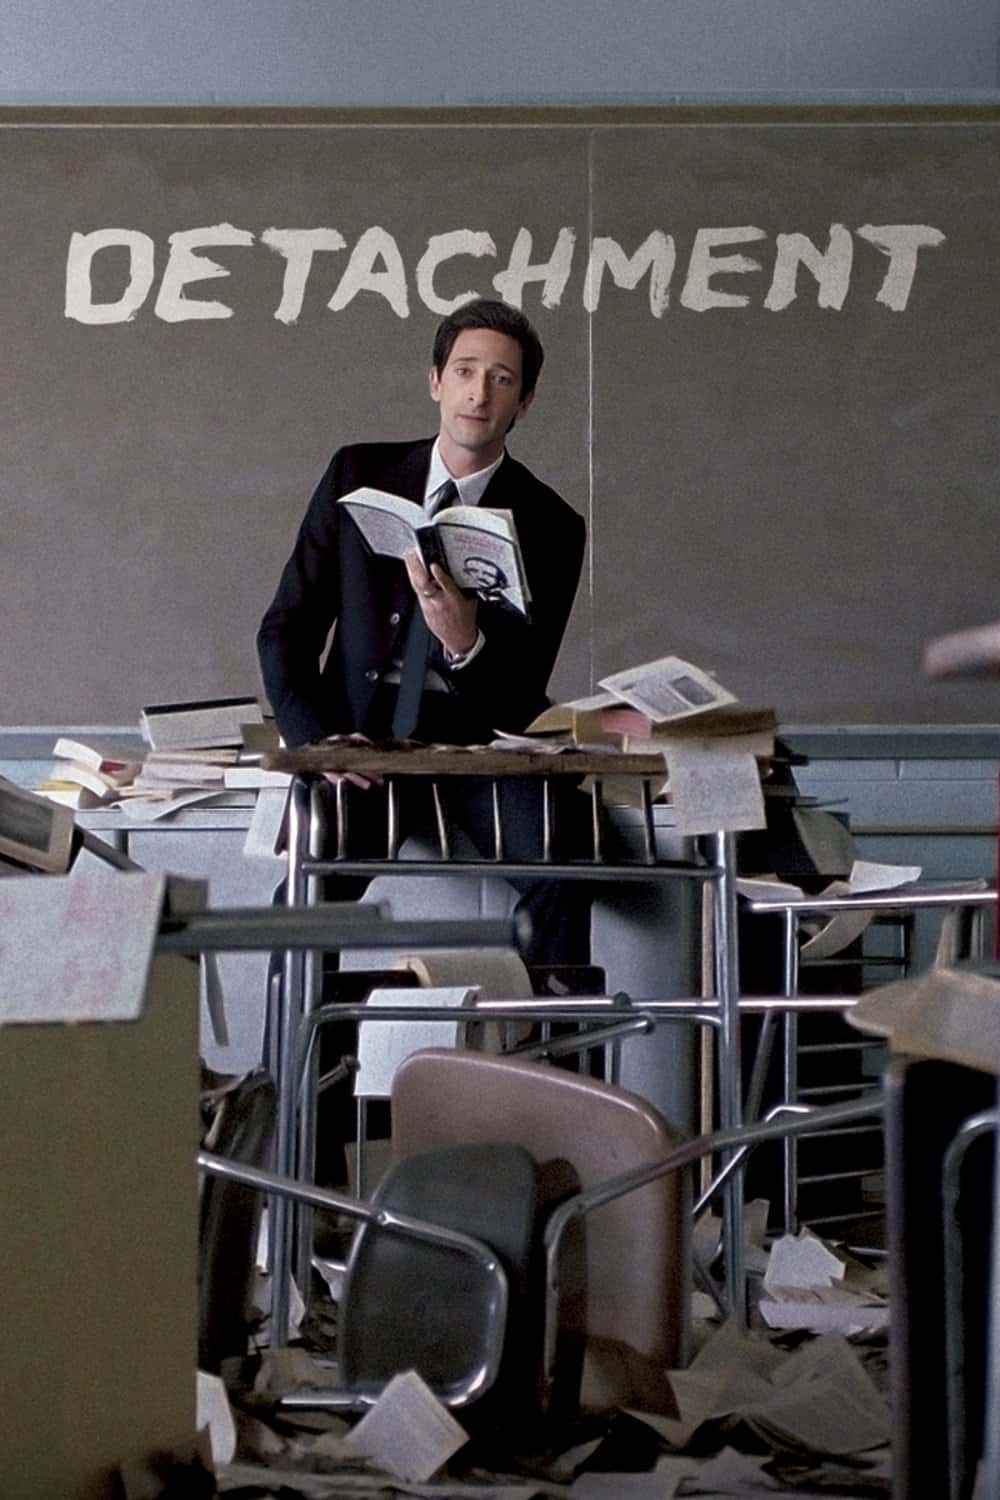 Detachment, 2011